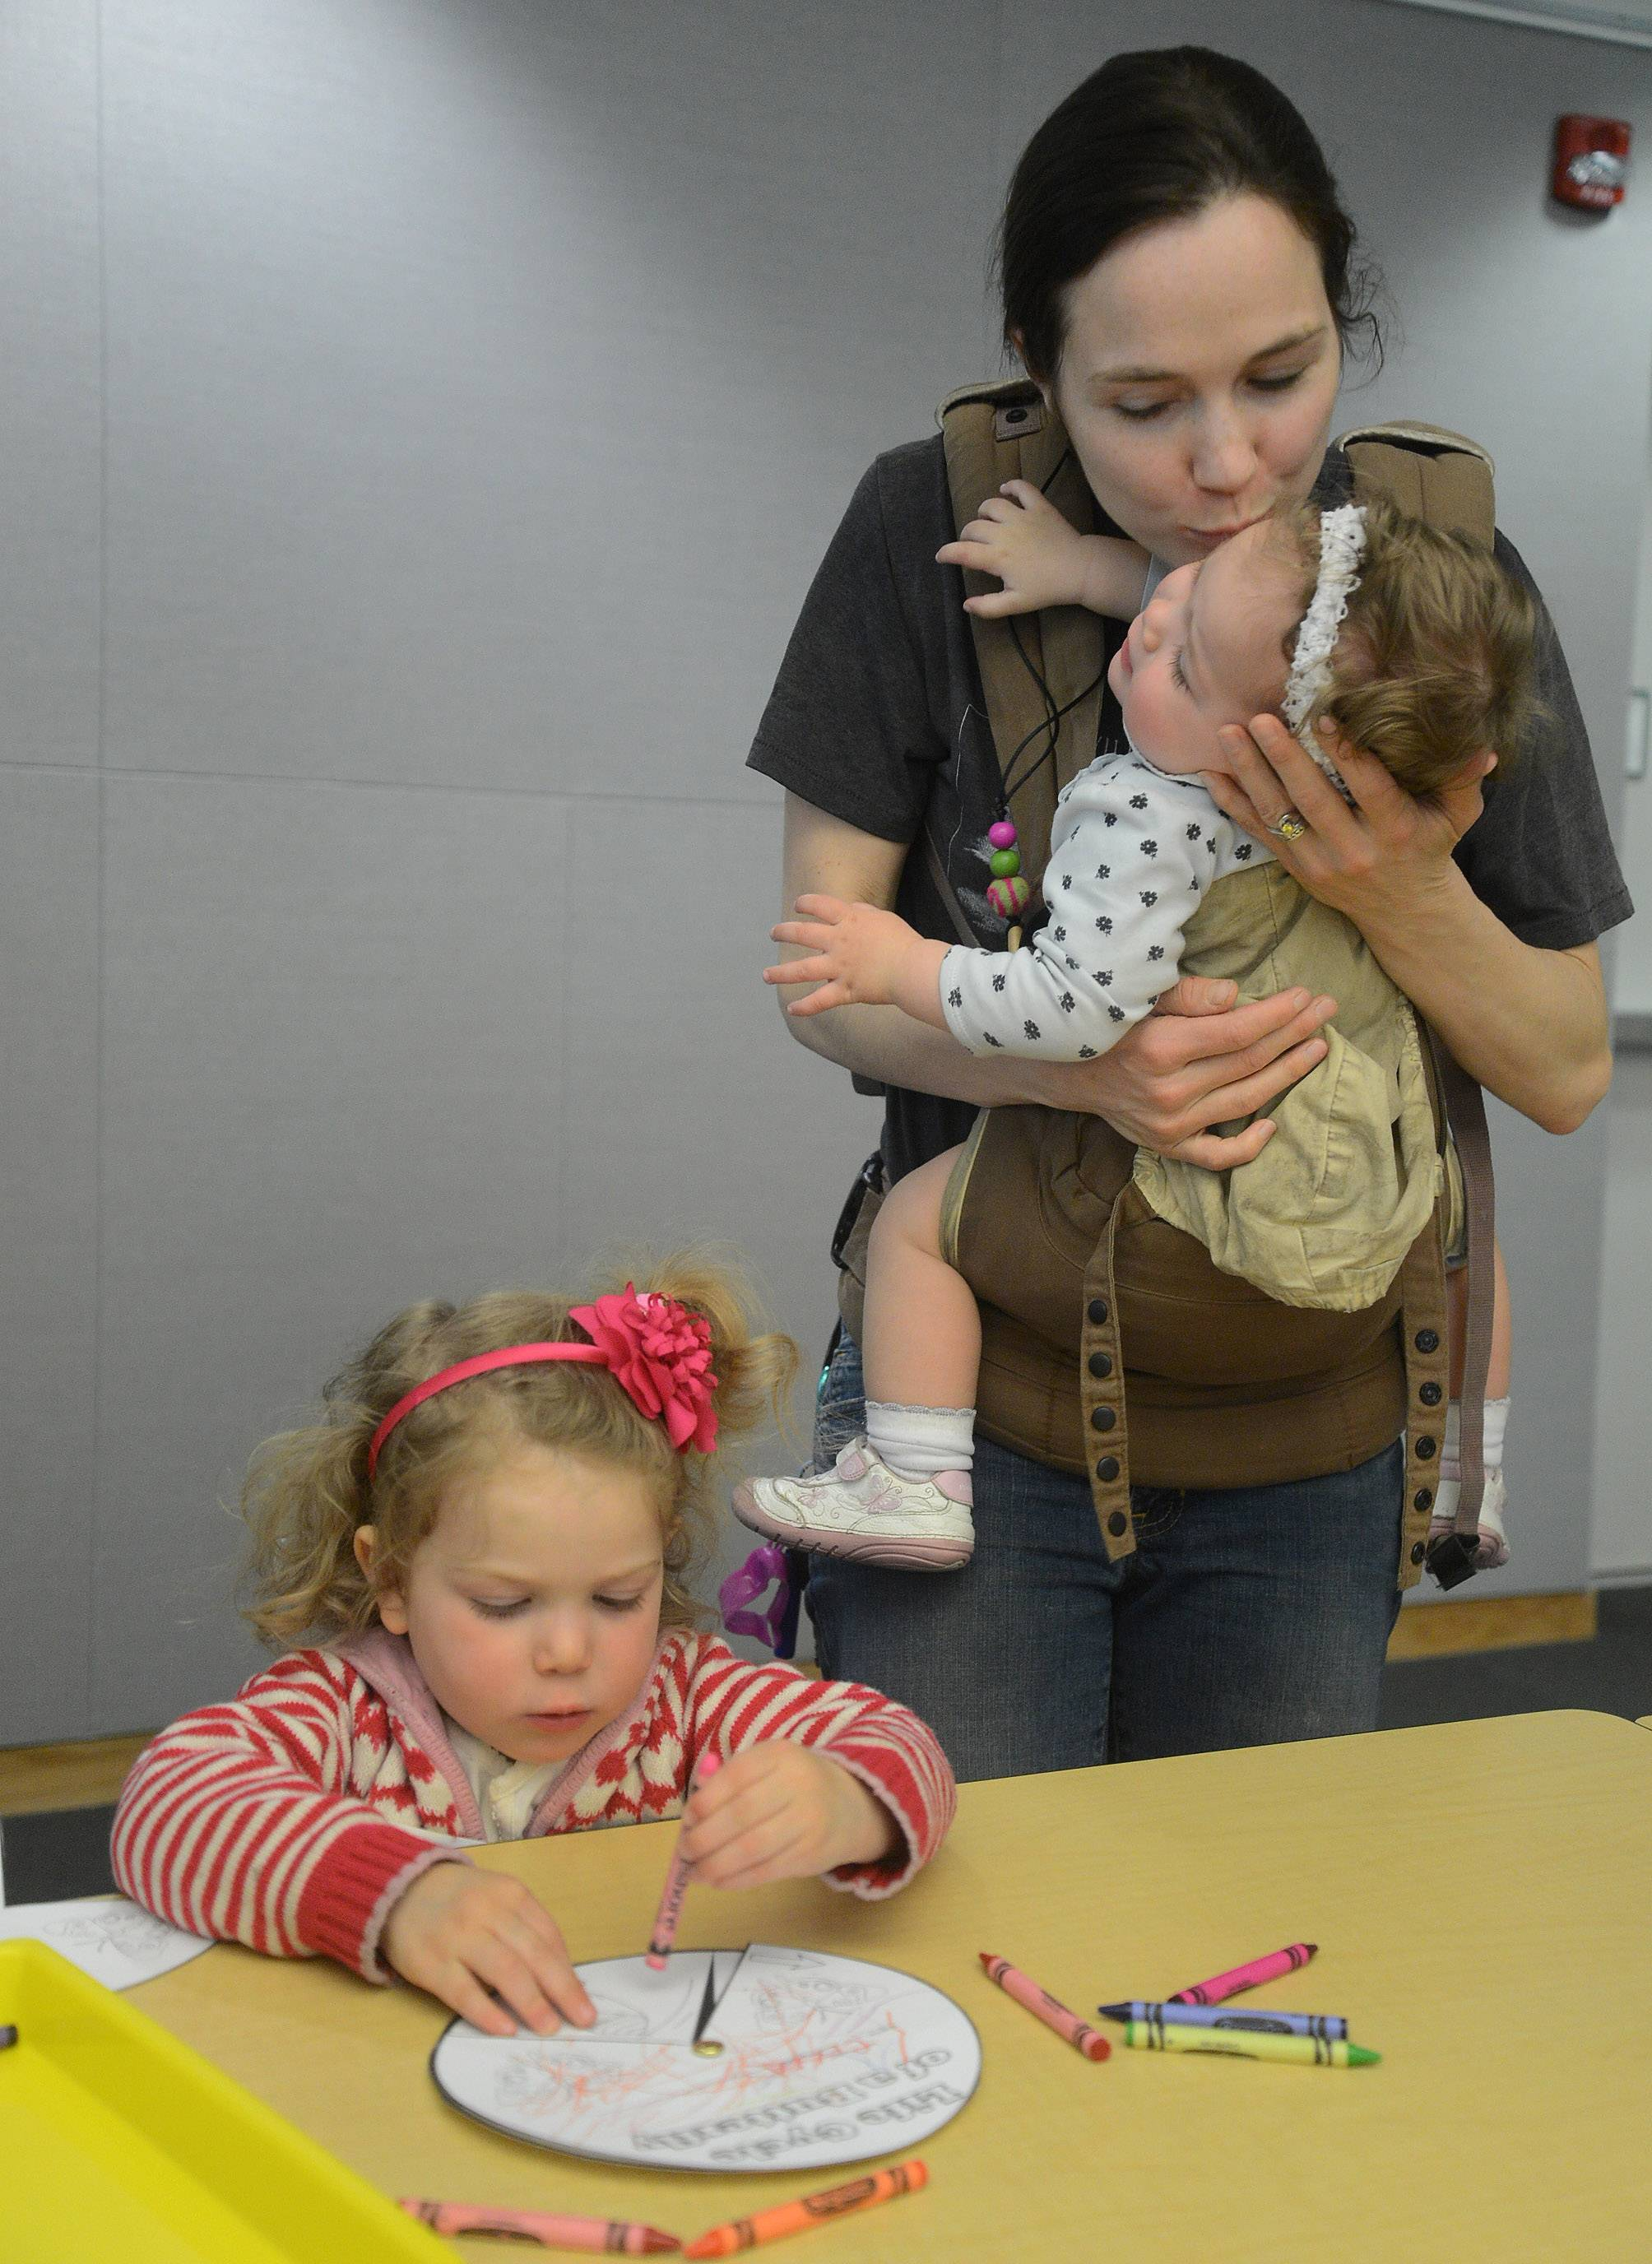 Holly Aronoff, of Vernon Hills, holds one-year-old Violet, while helping her three-year-old Celia color butterflies, during the Vernon Area Public Library Preschool Science Detectives program.